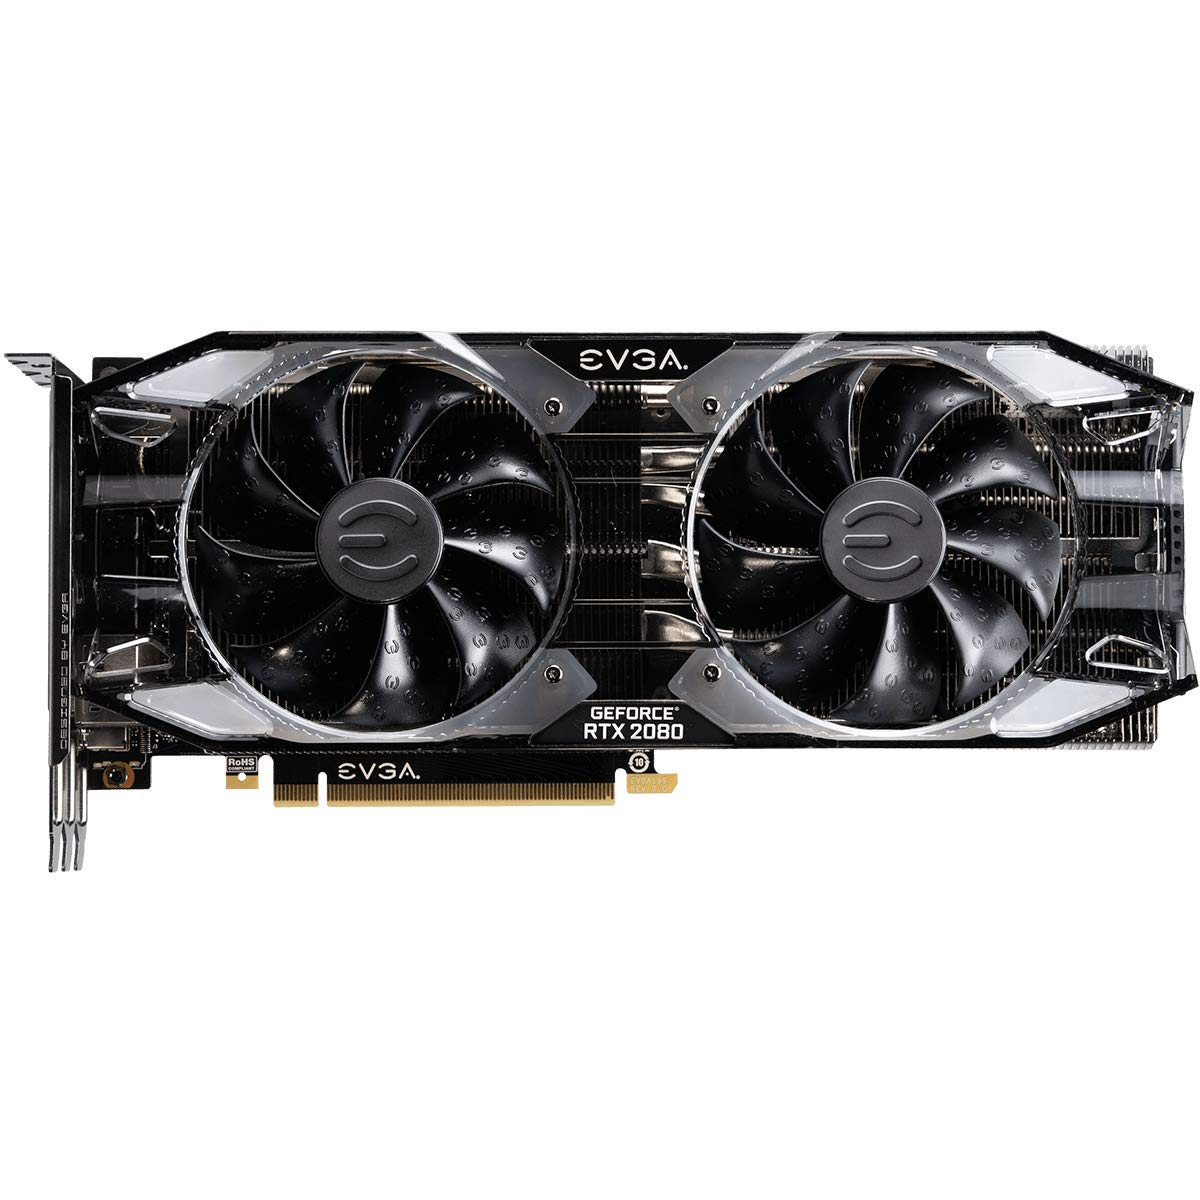 EVGA GeForce RTX 2080 XC ULTRA GAMING, 8GB GDDR6, Dual HDB Fans & RGB LED Graphics Card 08G-P4-2183-KR by EVGA (Image #4)